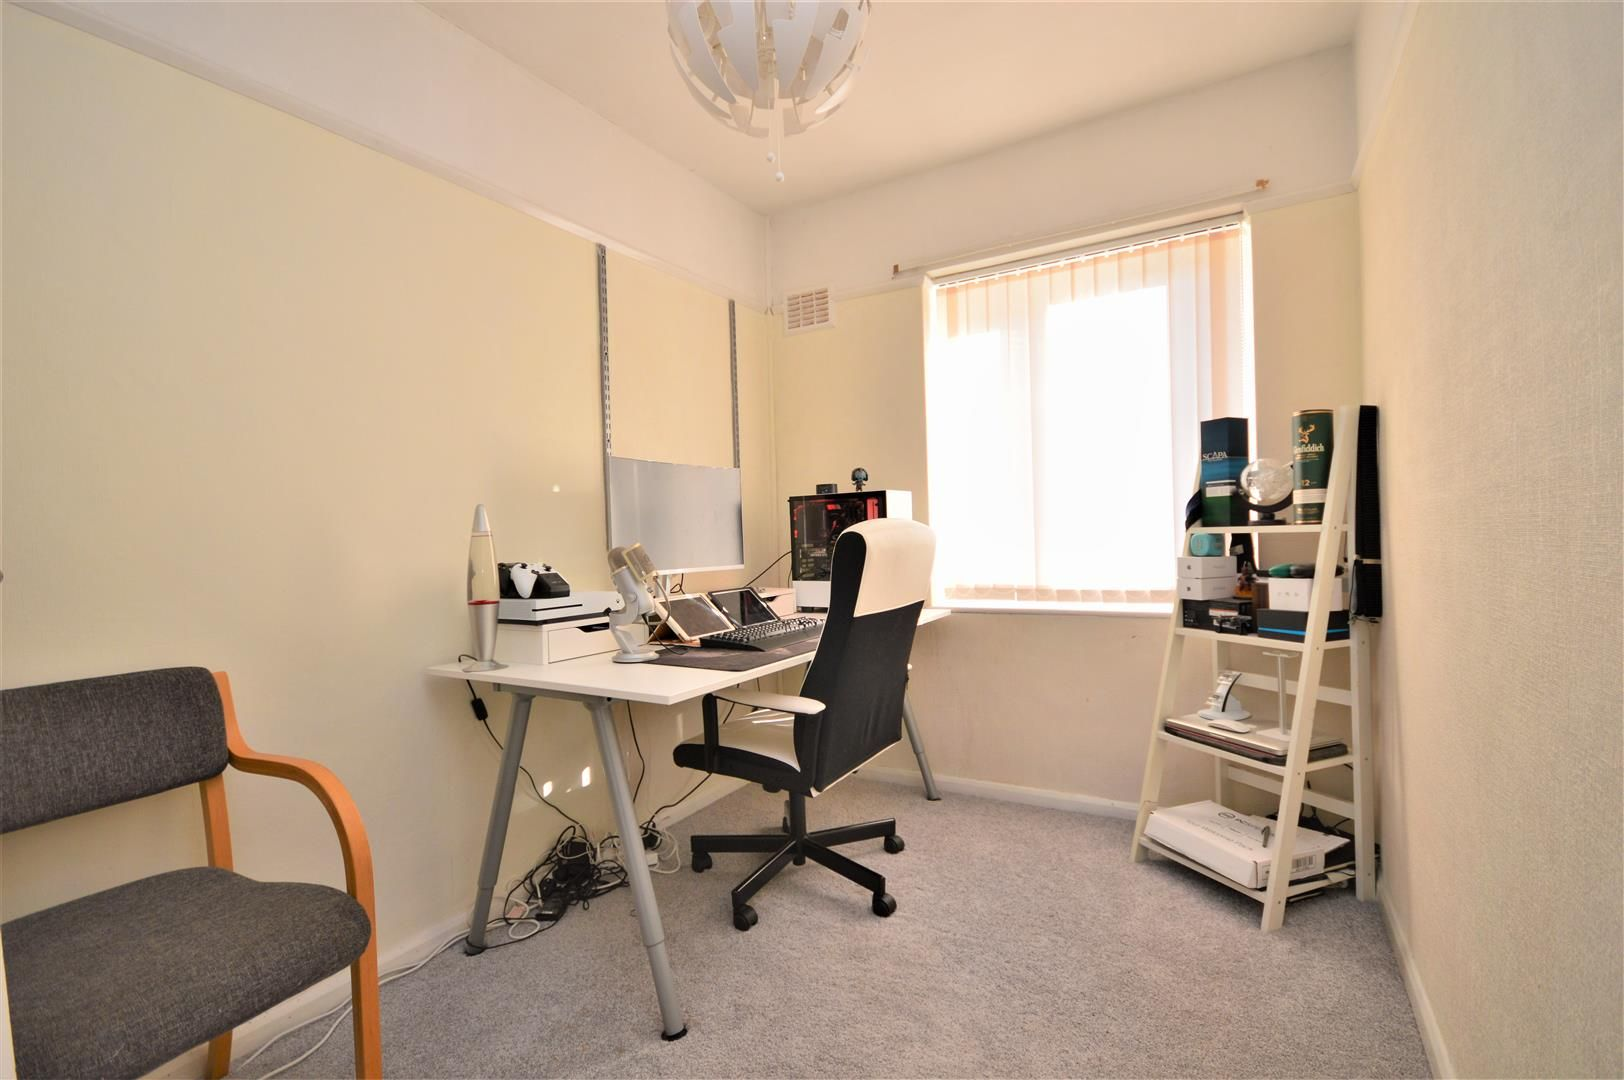 3 bed end-of-terrace for sale in Hereford  - Property Image 12